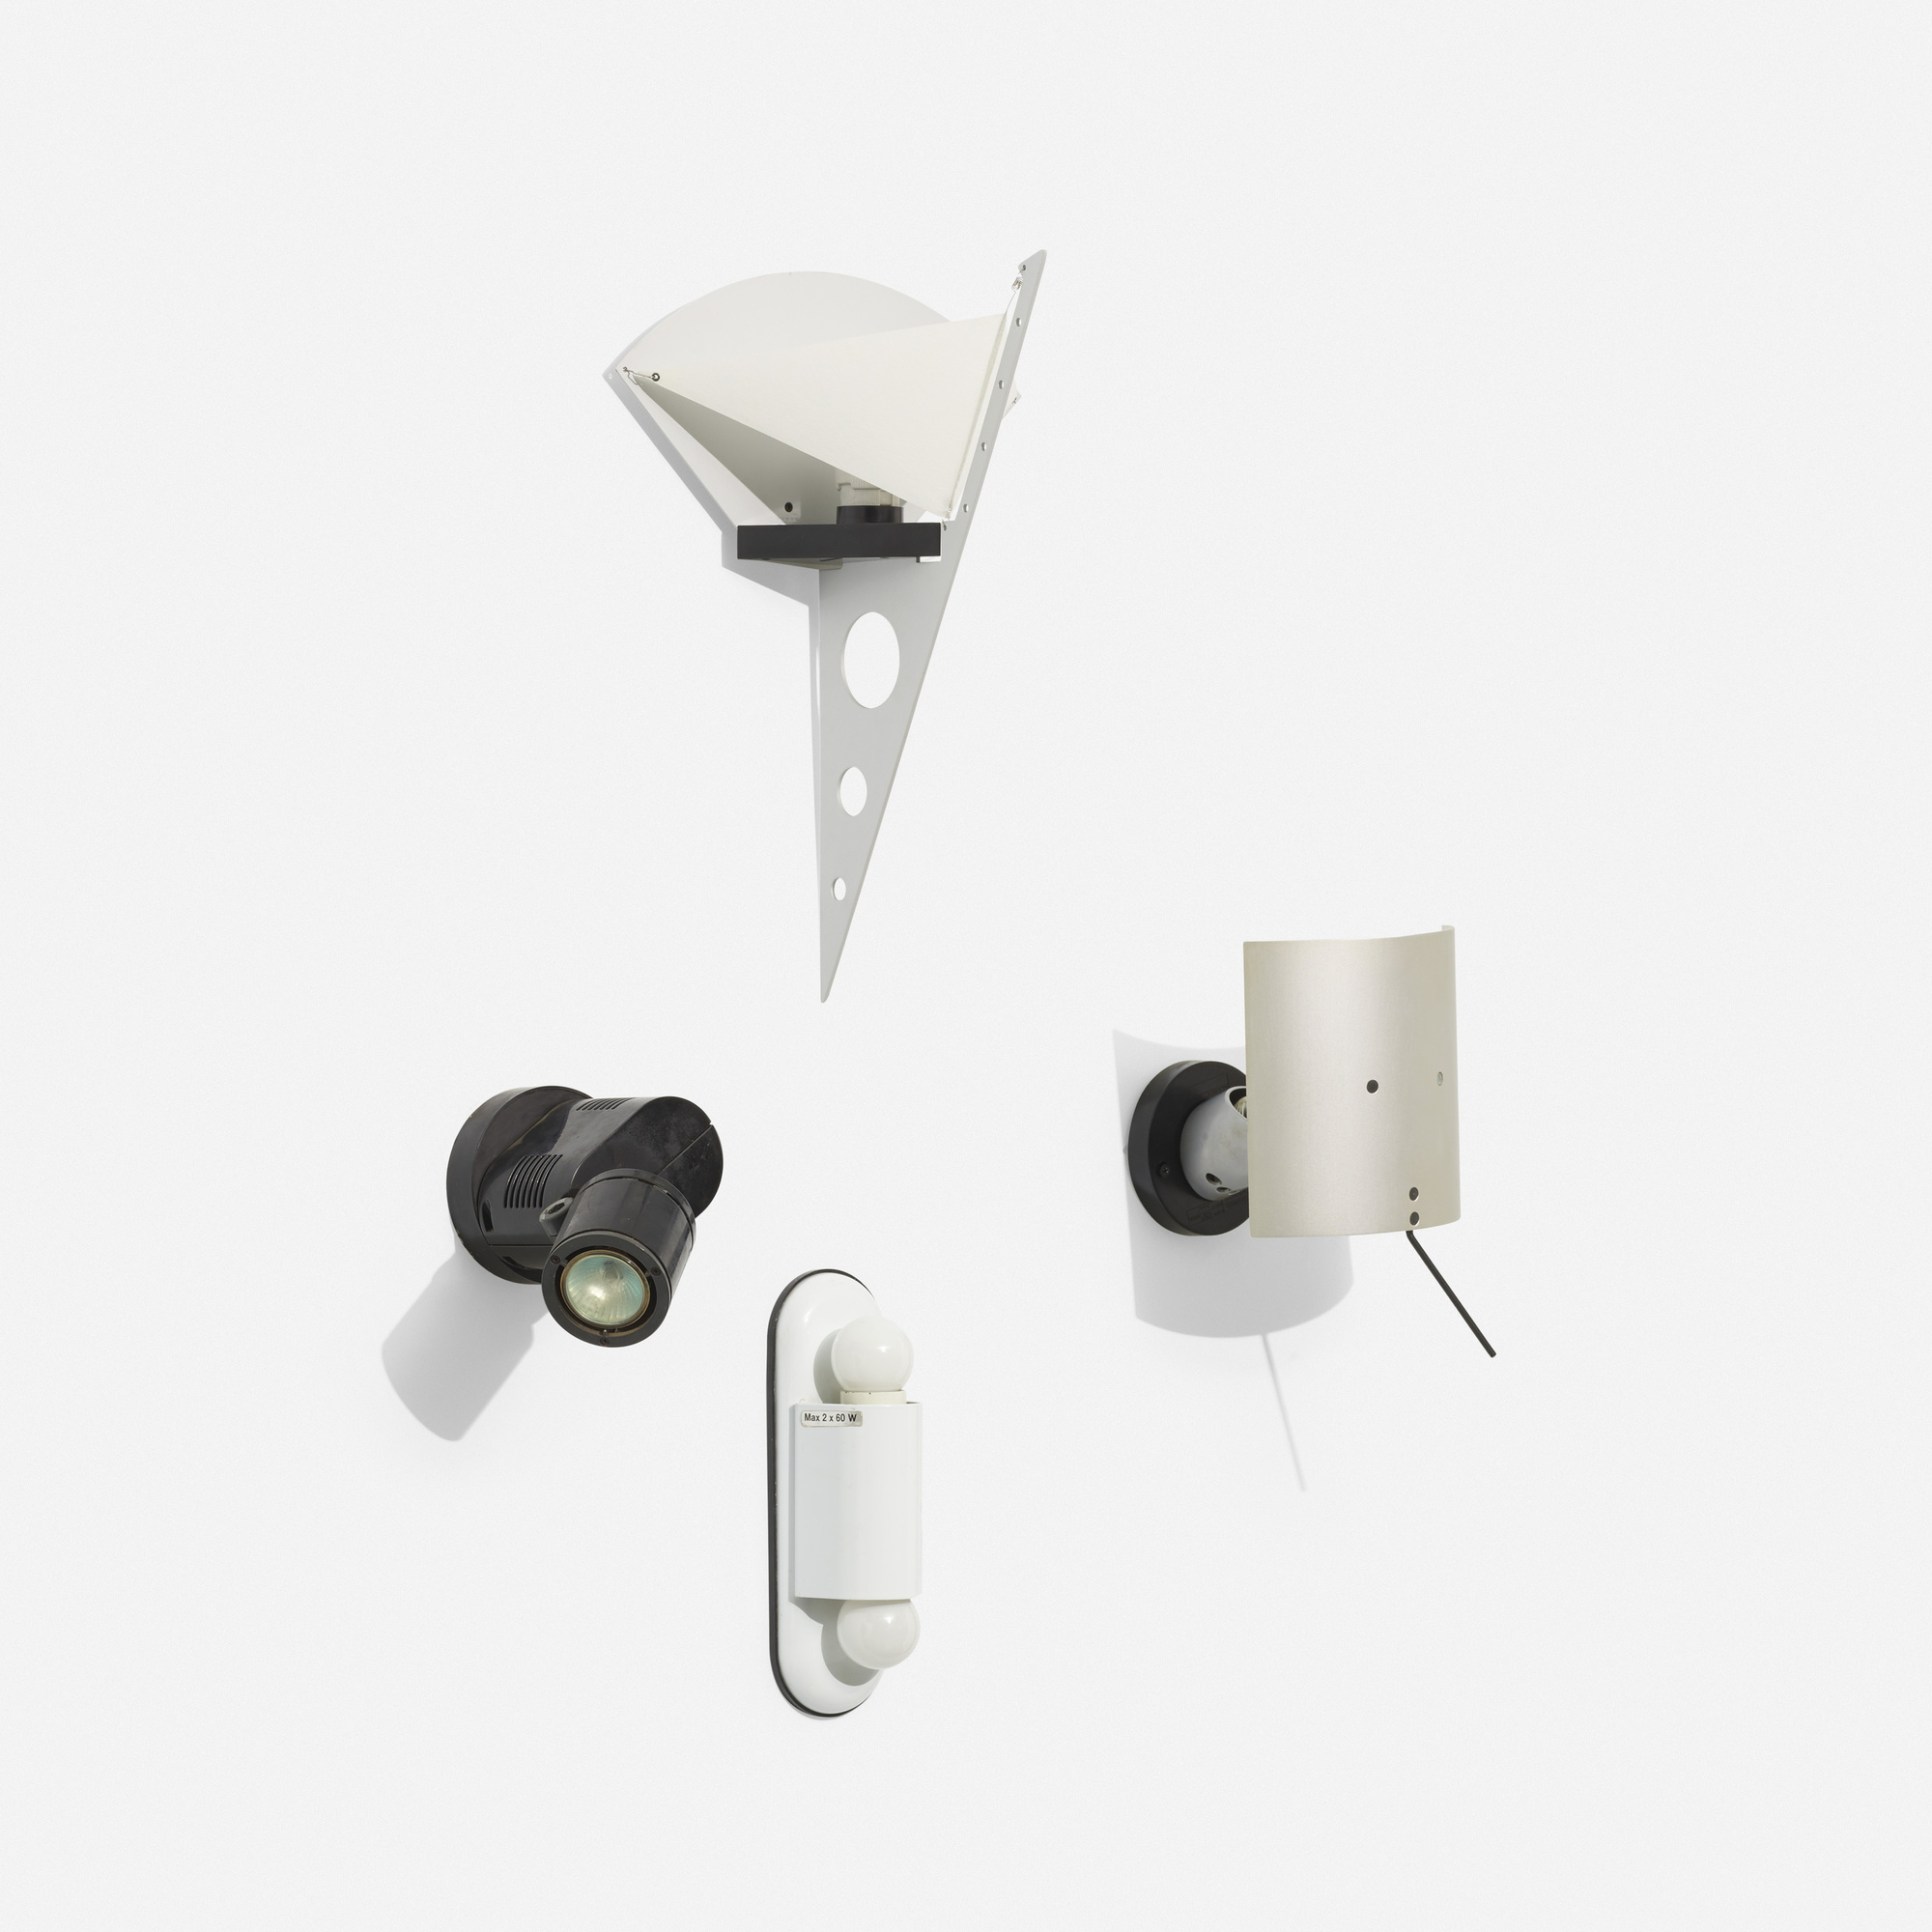 141: Artemide / collection of four sconces (1 of 1)